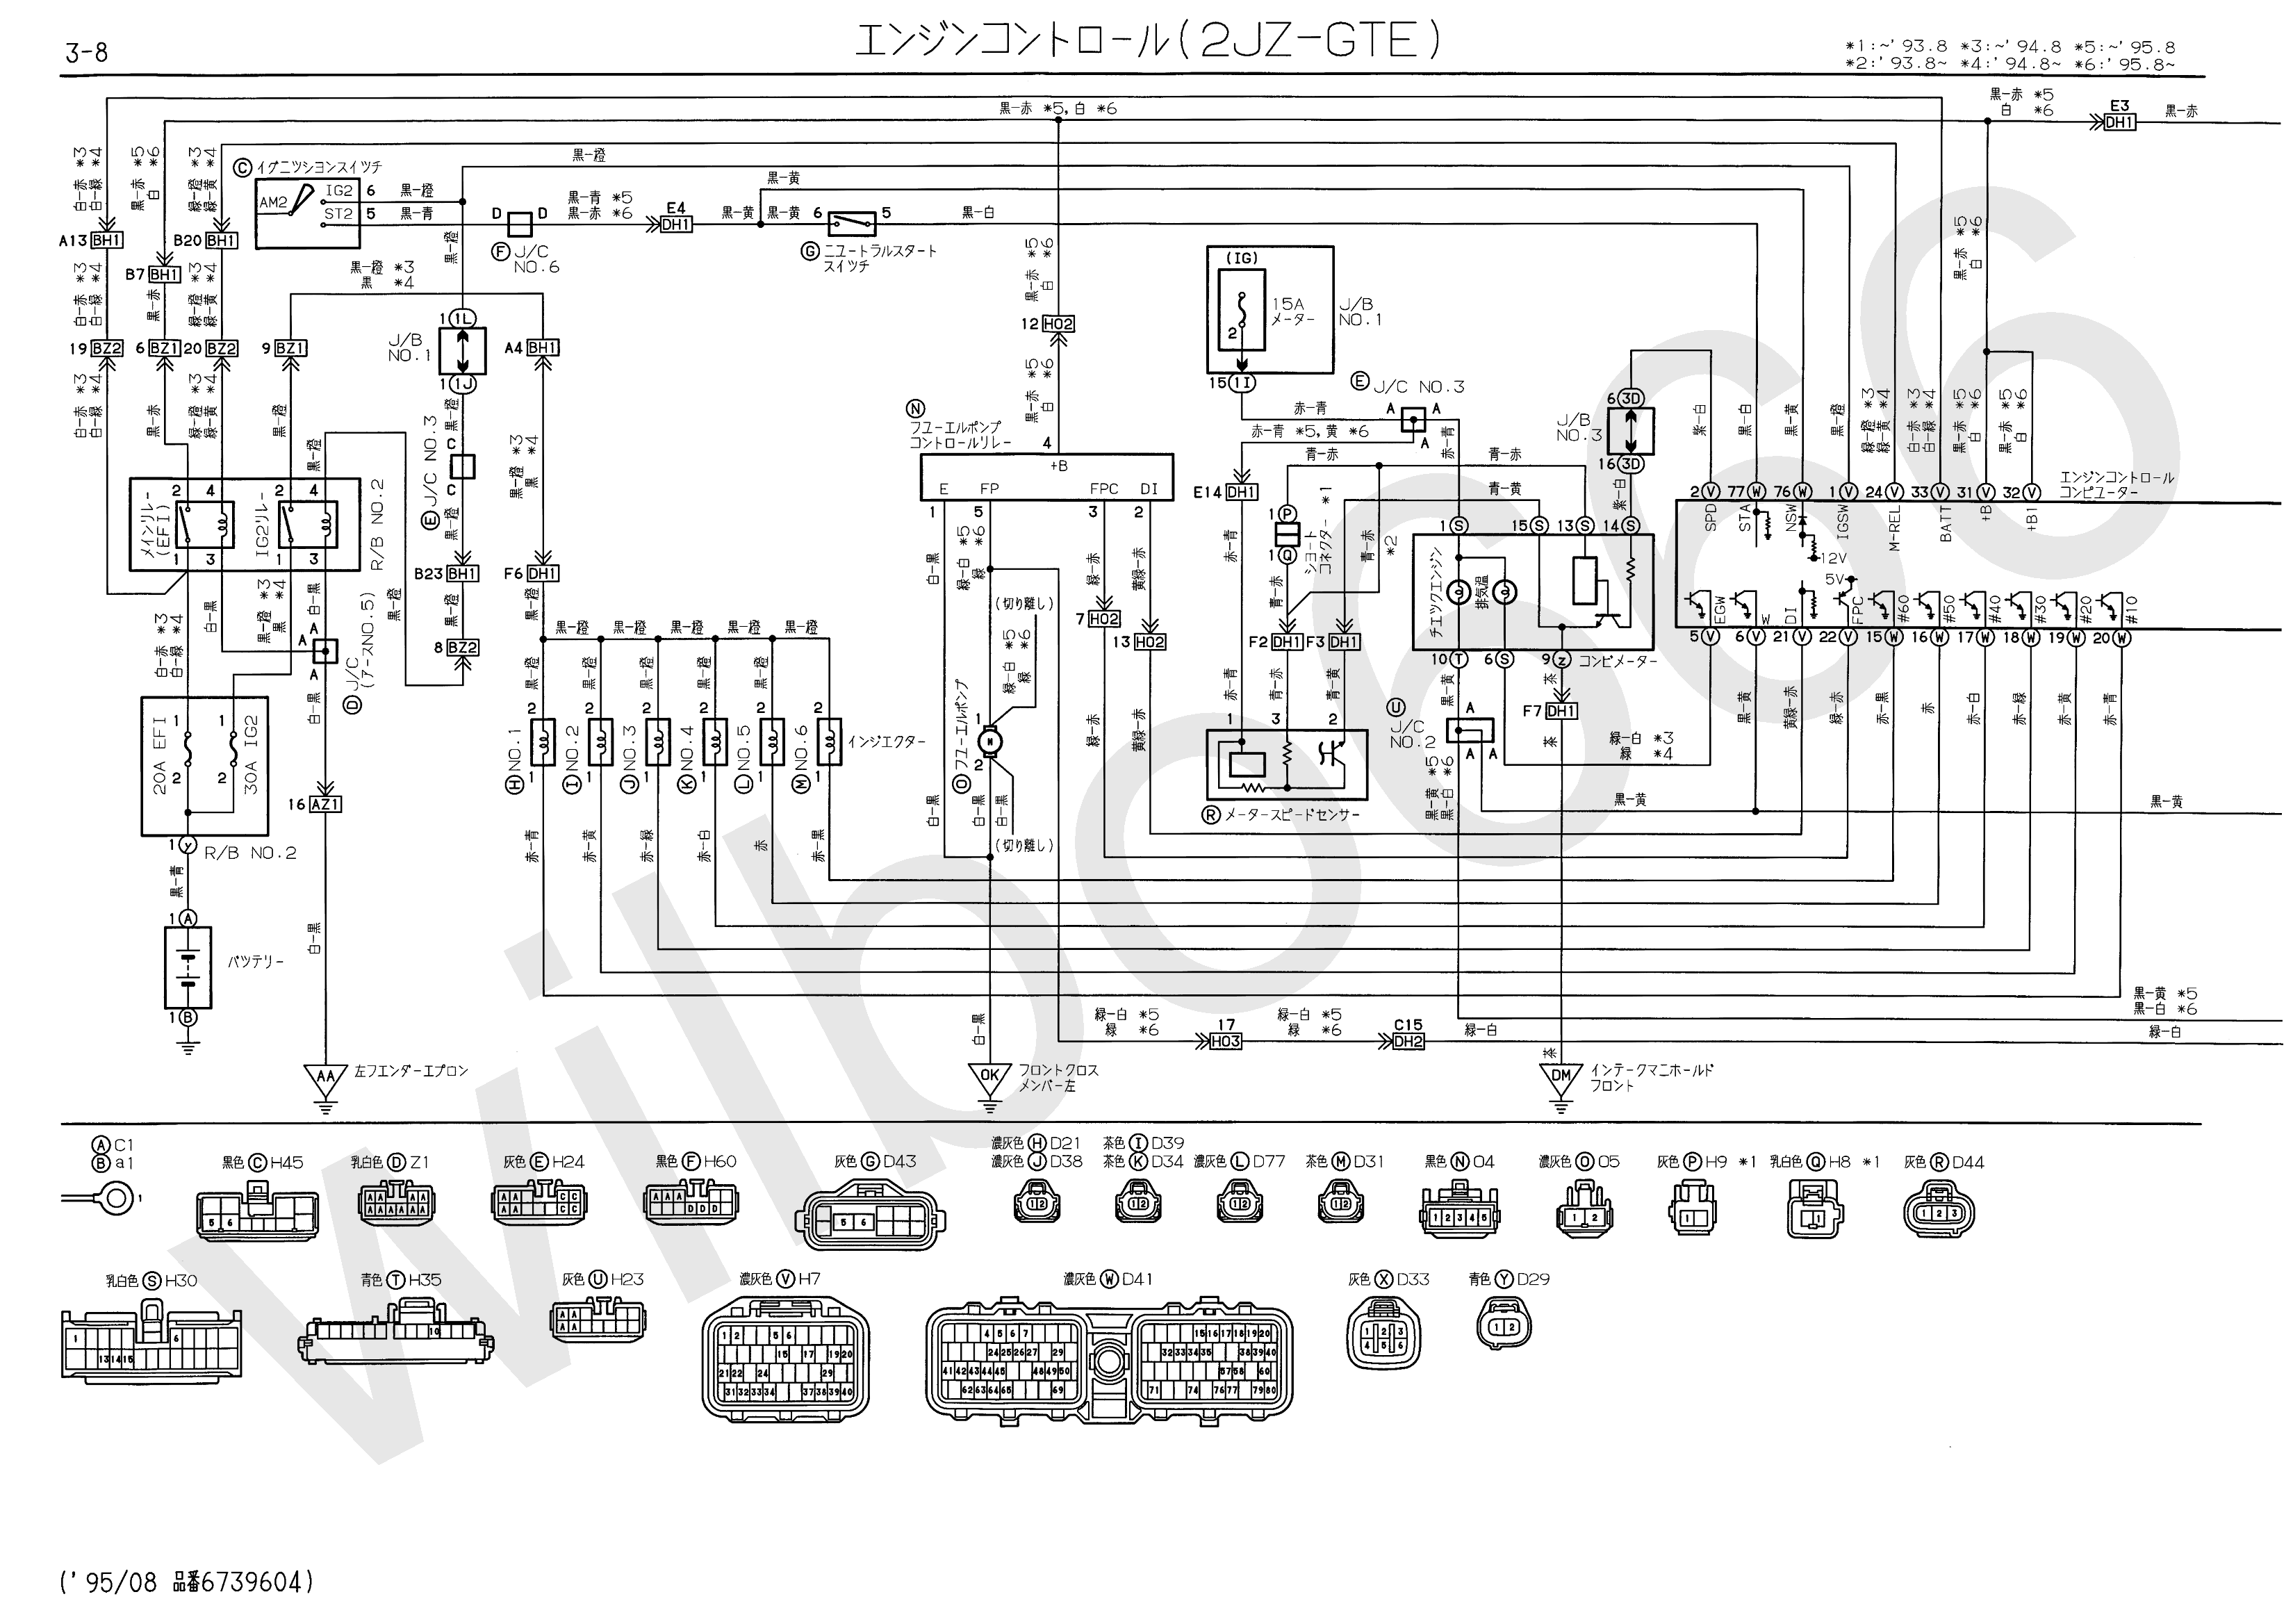 toyota toyota 3 wire diagram key toyota image wiring toyota wiring diagram legend toyota wiring diagrams in addition toyota jbl wiring diagram toyota wiring